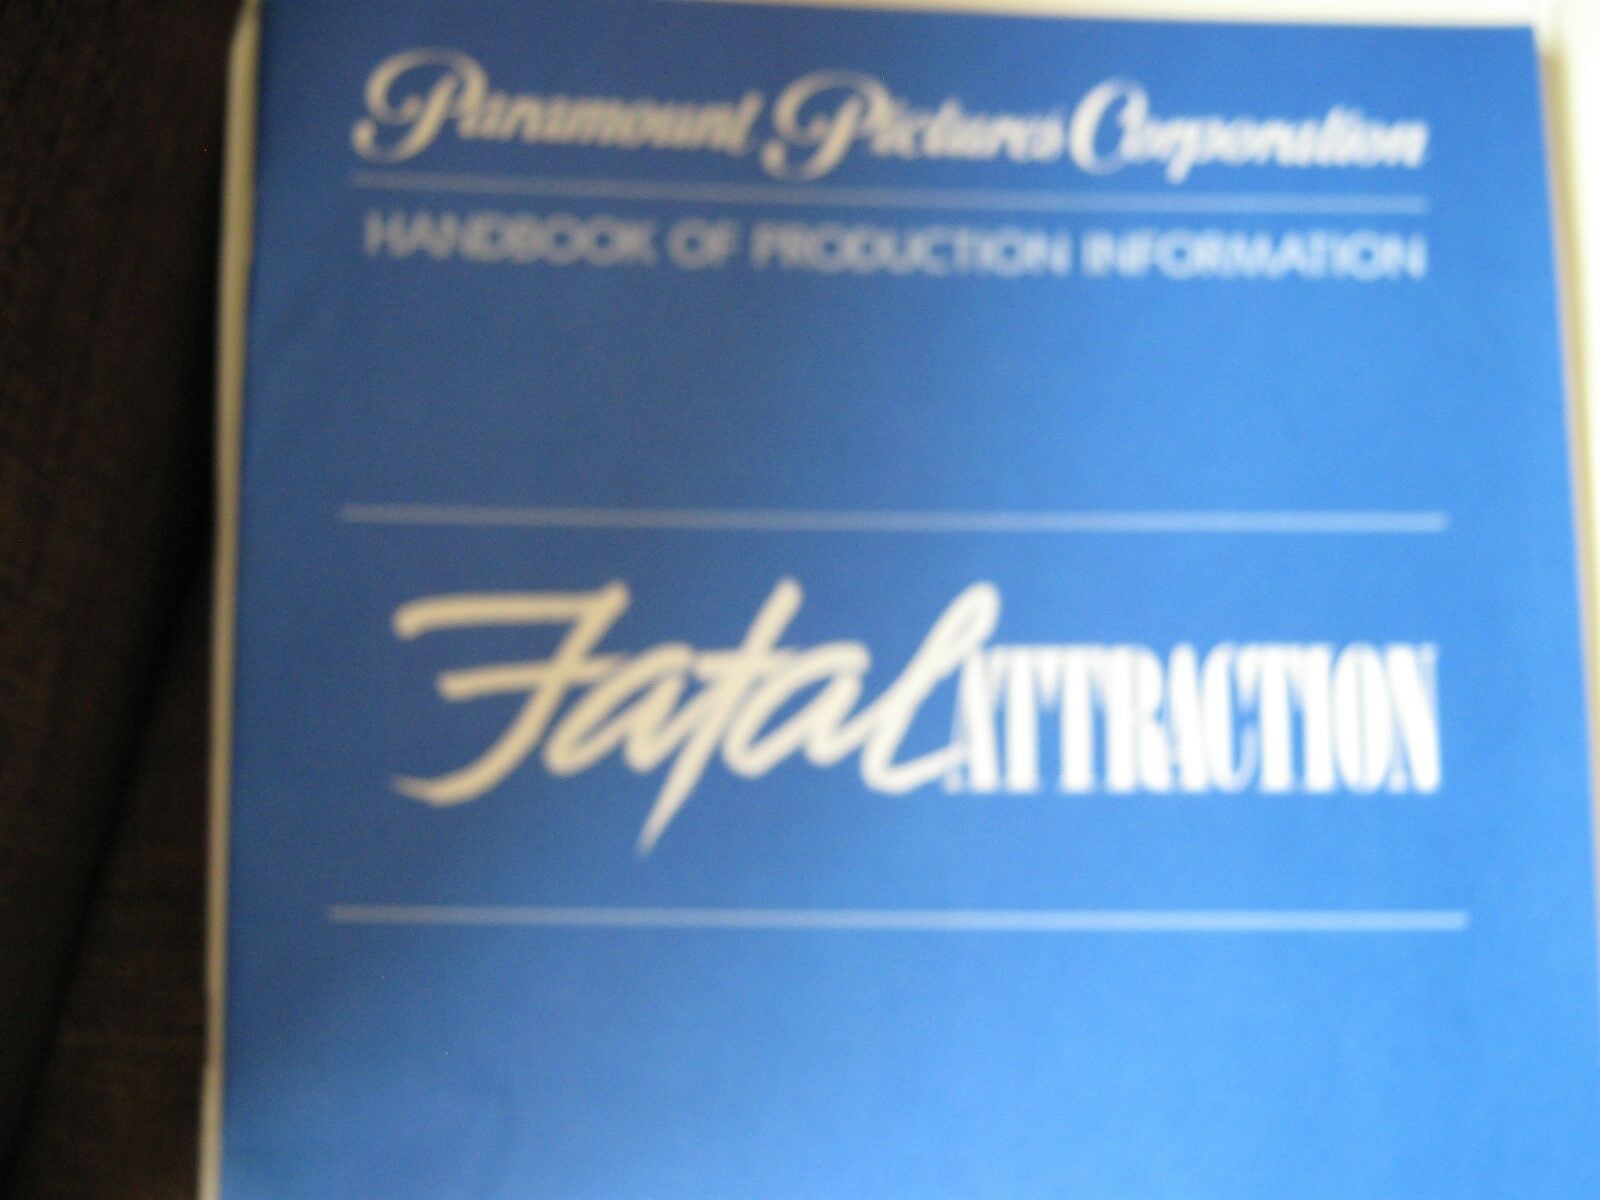 Fatal Attraction , Handbook of Production Information a